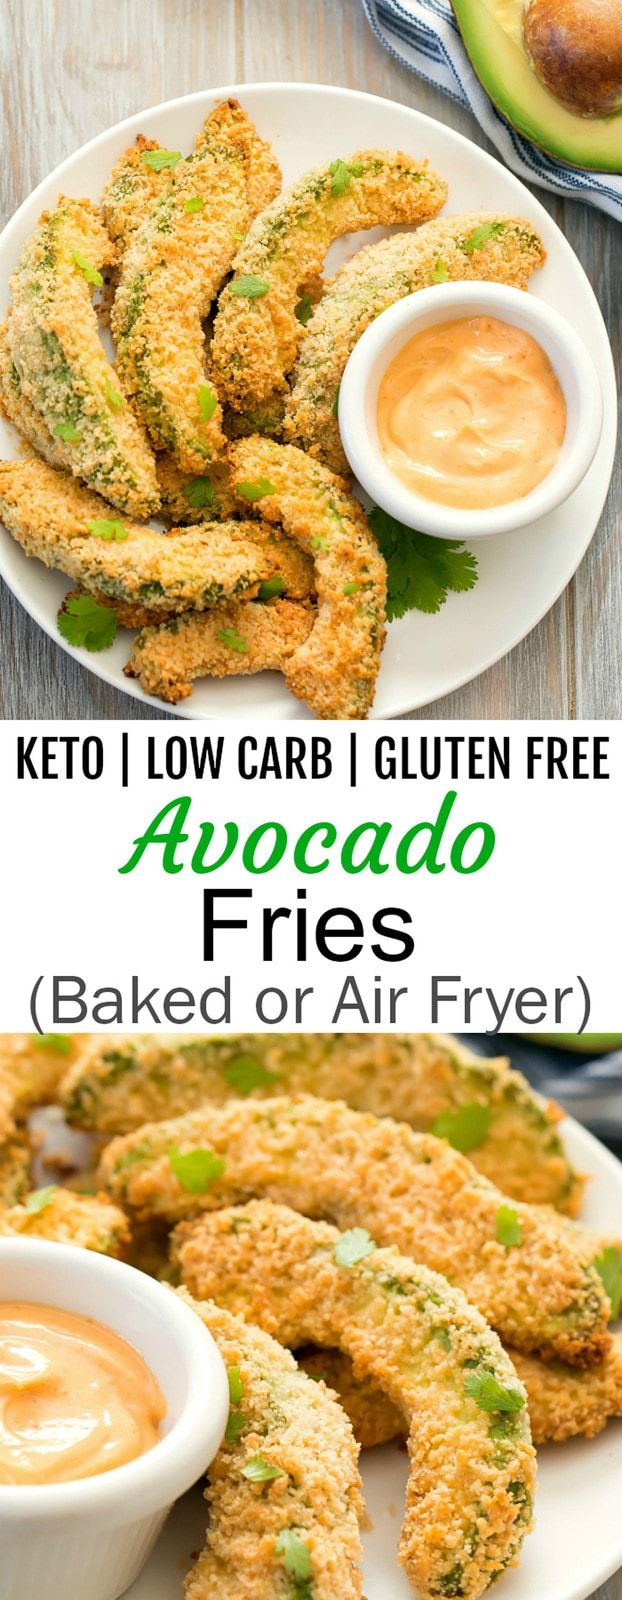 Photo of Keto Avocado Fries (Air Fryer or Baked)